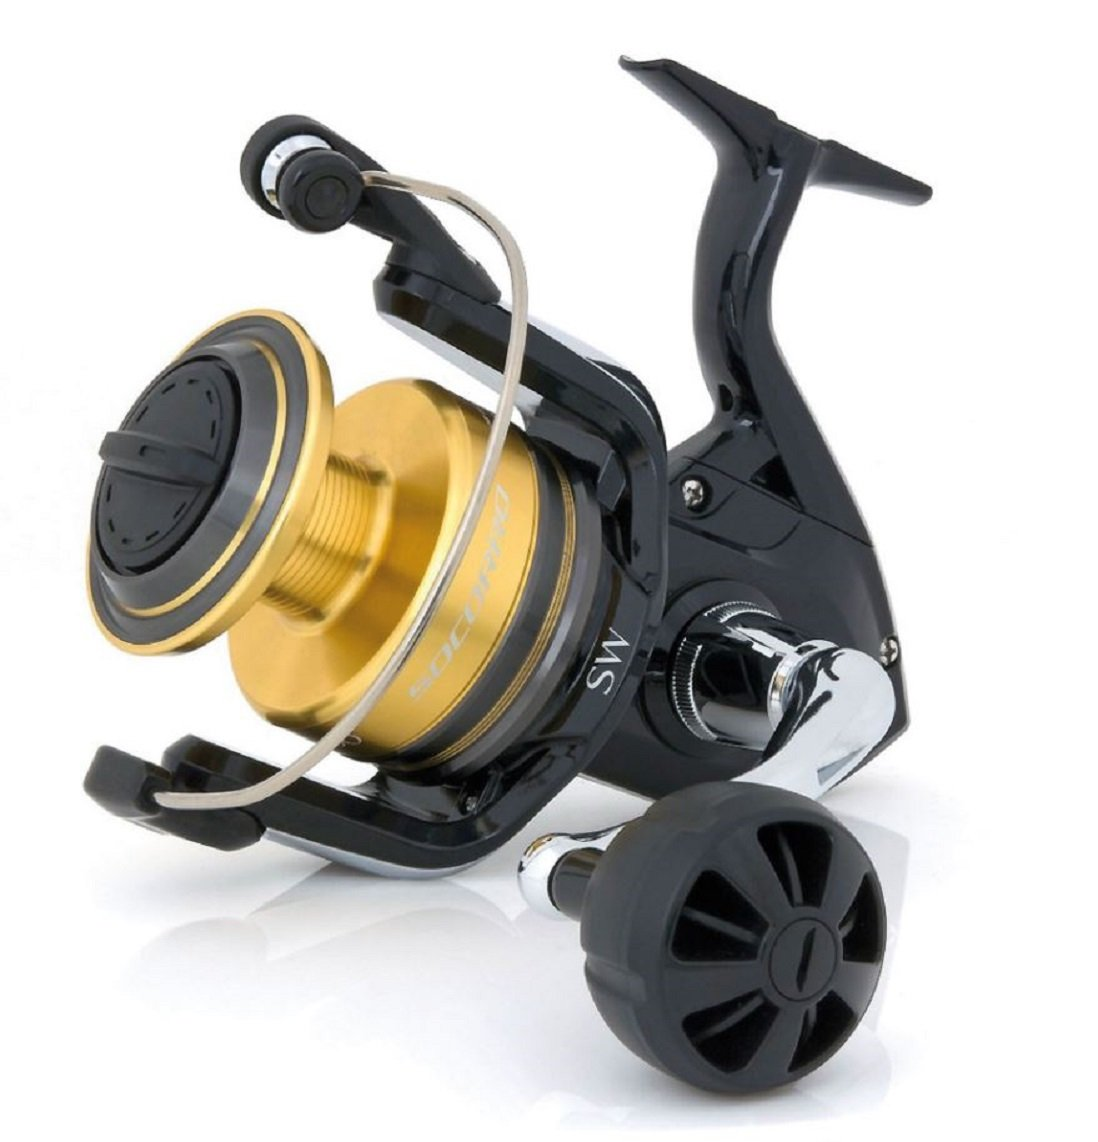 Shimano Socorro 5000 SW, heavy duty saltwater spinning fishing reel, SOC5000SW by Shimano